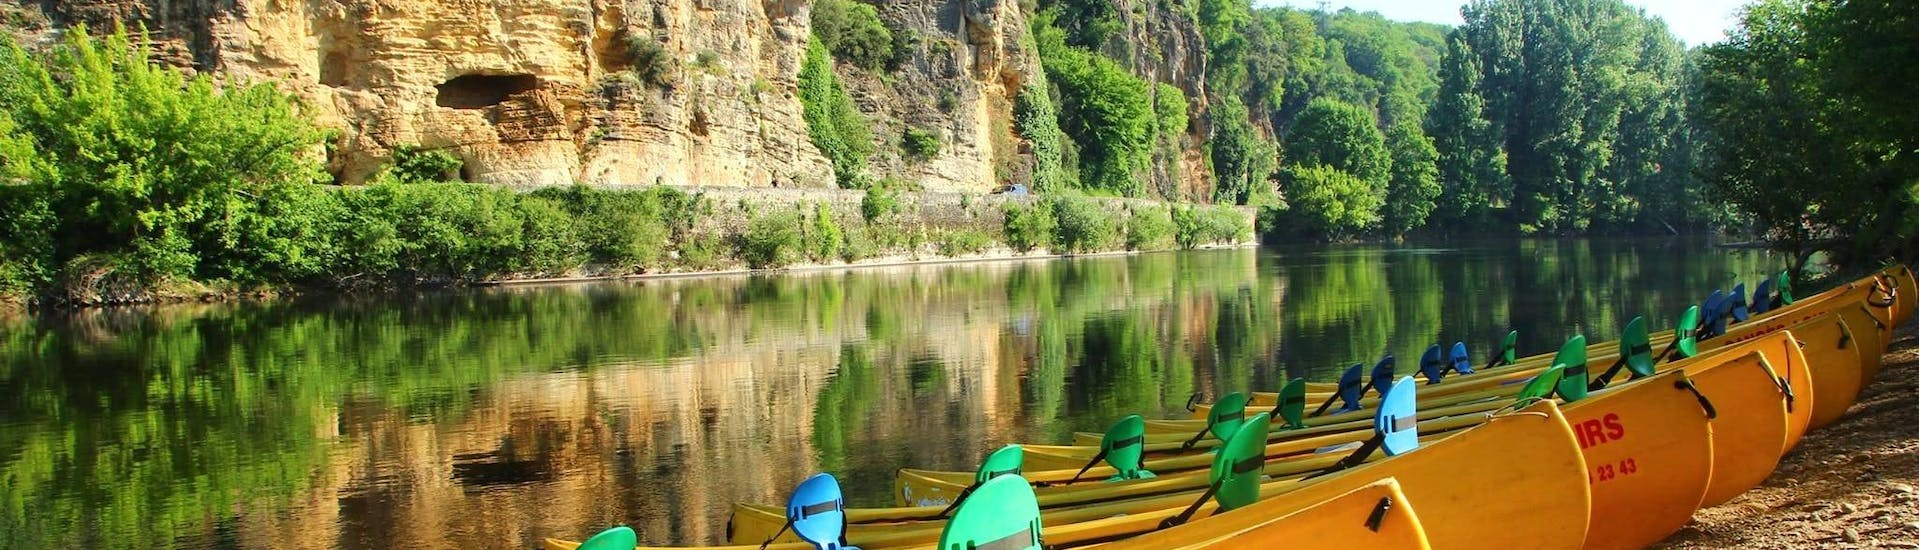 Empty canoes from Canoës Loisirs await holidaymakers on the banks of the Dordogne in the early morning for a canoe trip along the river.